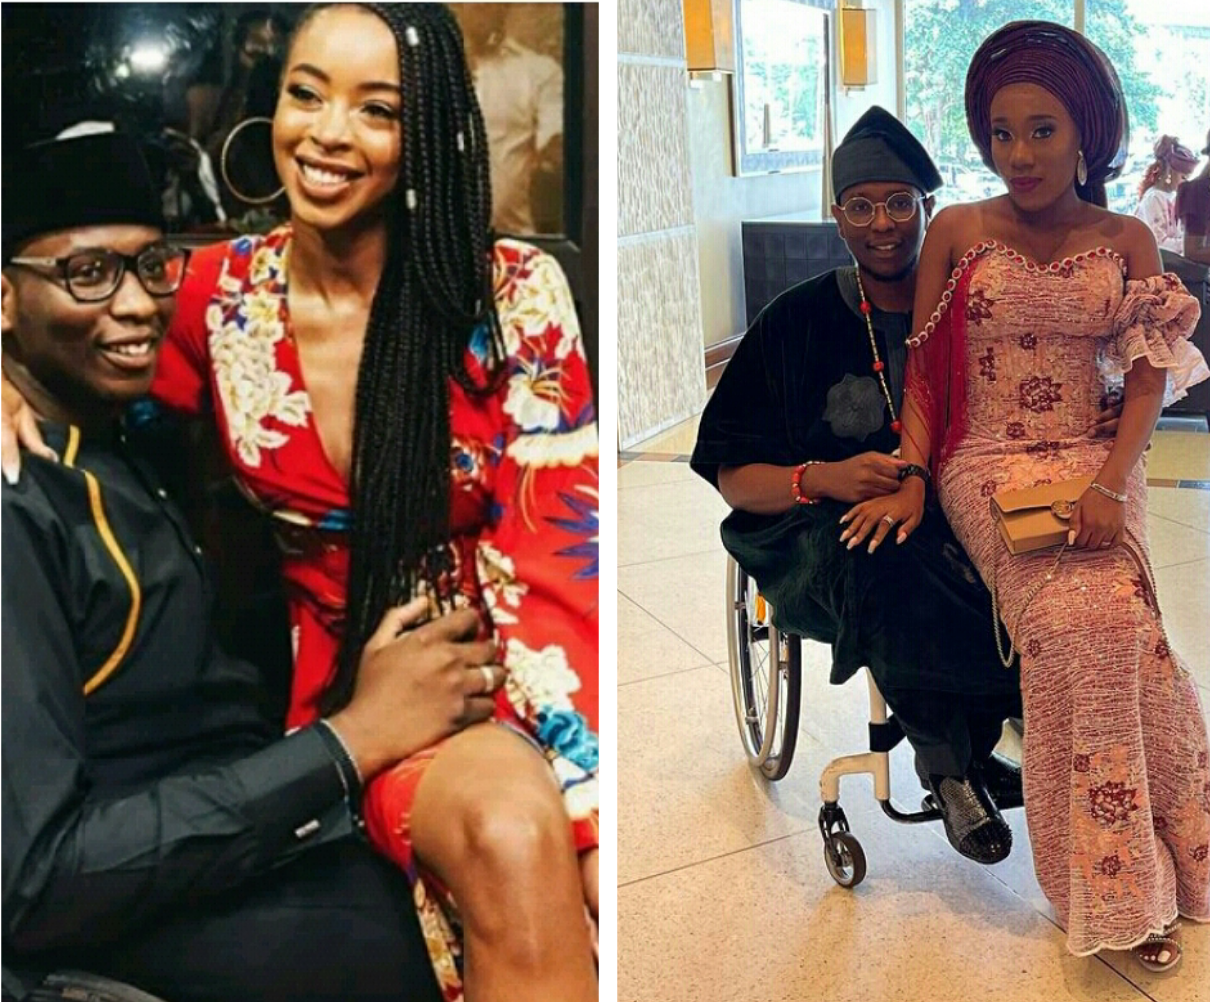 Former governor, Gbenga Daniel's physically challenged son, Debola introduces his new 'Olori' three years after he proposed to longtime girlfriend